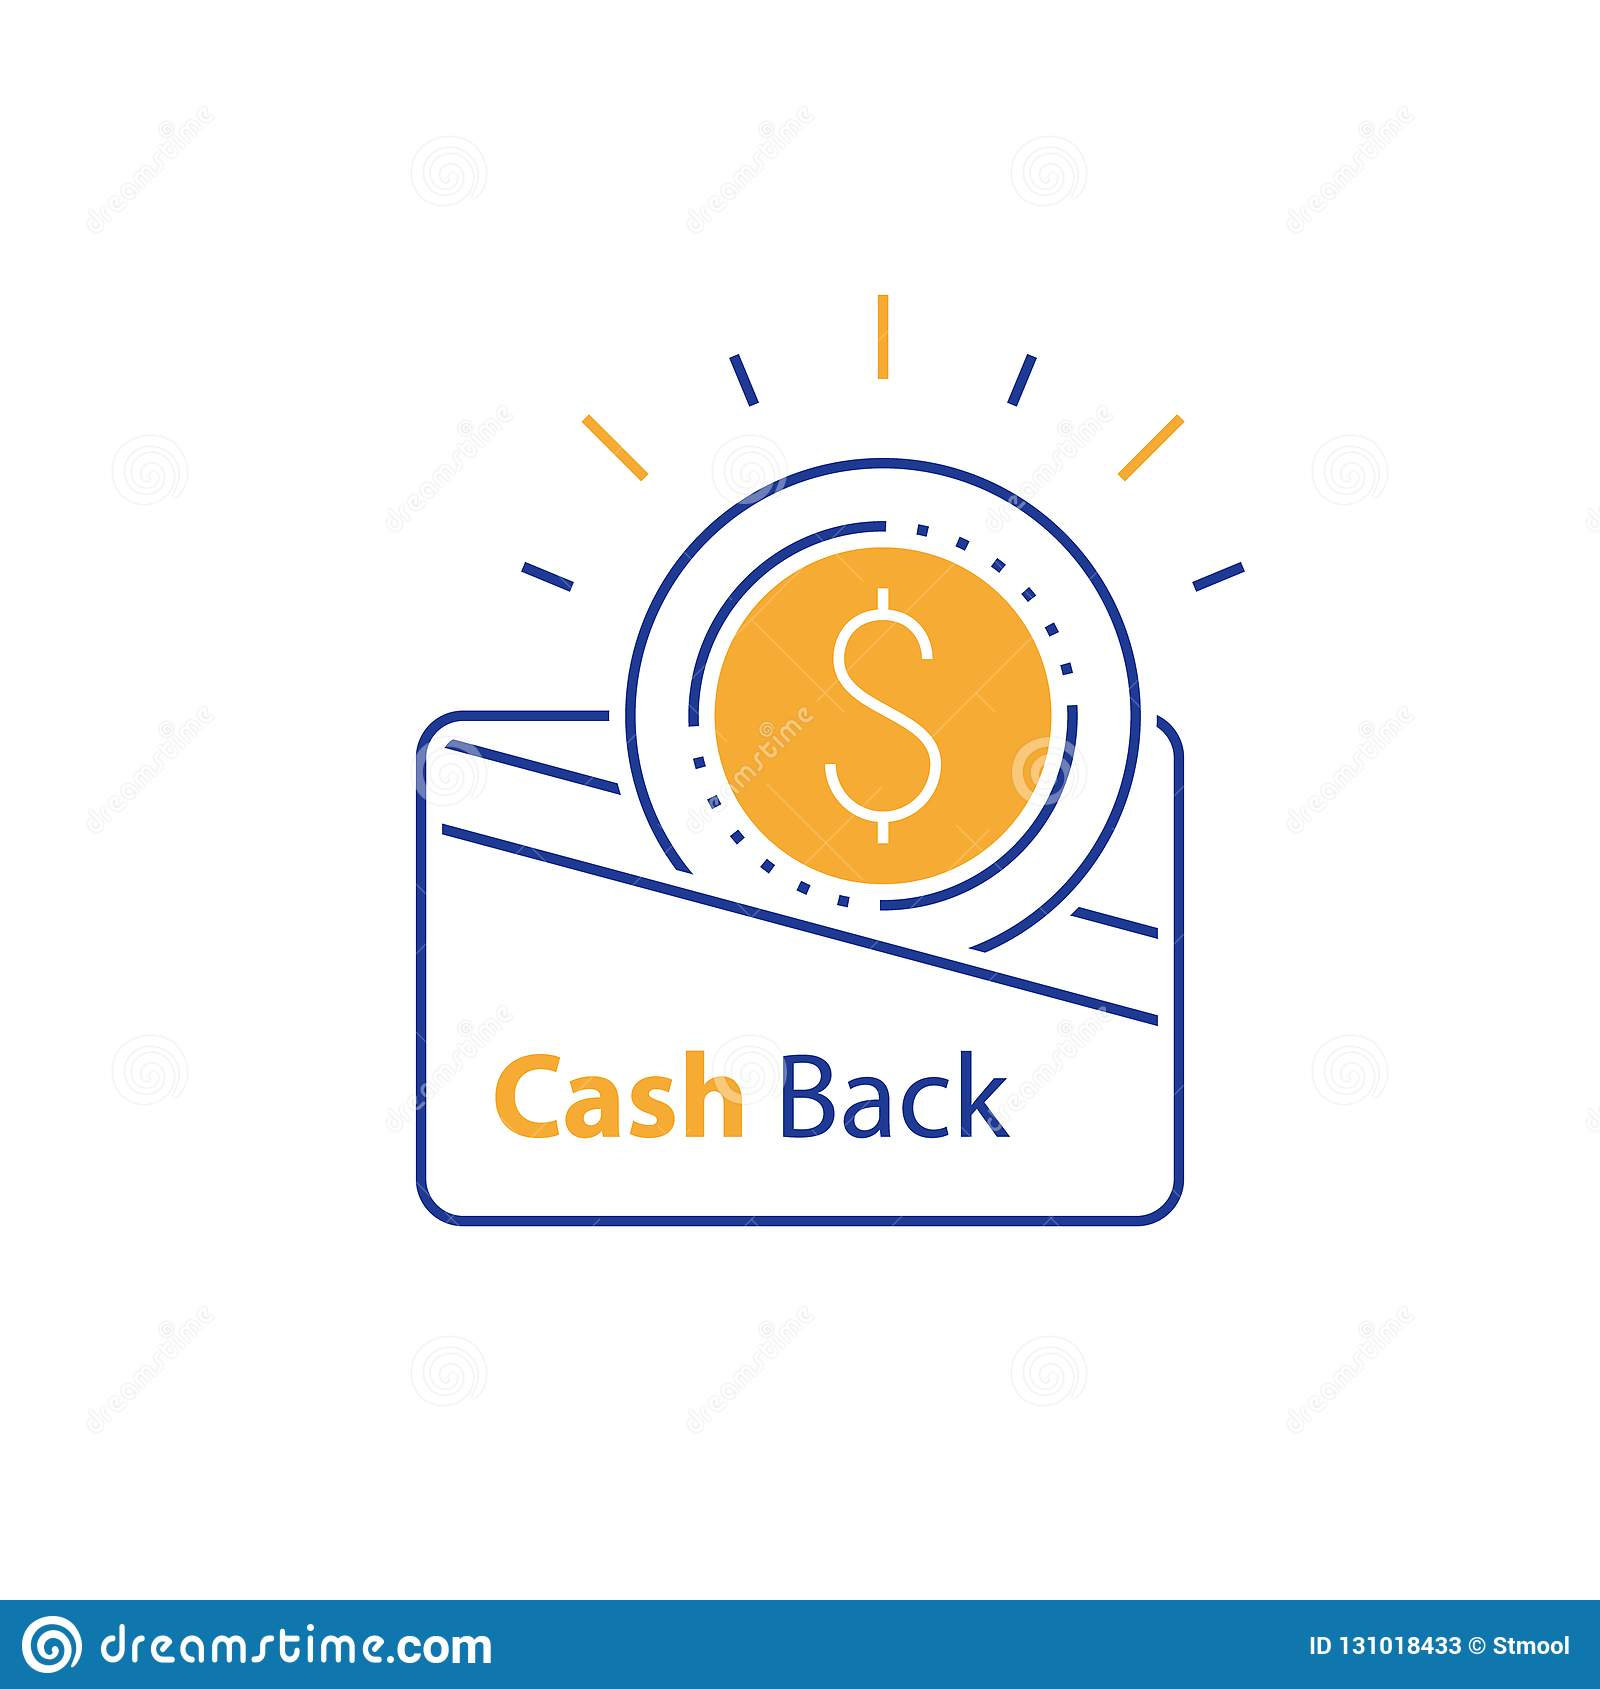 Cash Back, Currency Credit Card, Fast Easy Loan, Loyalty